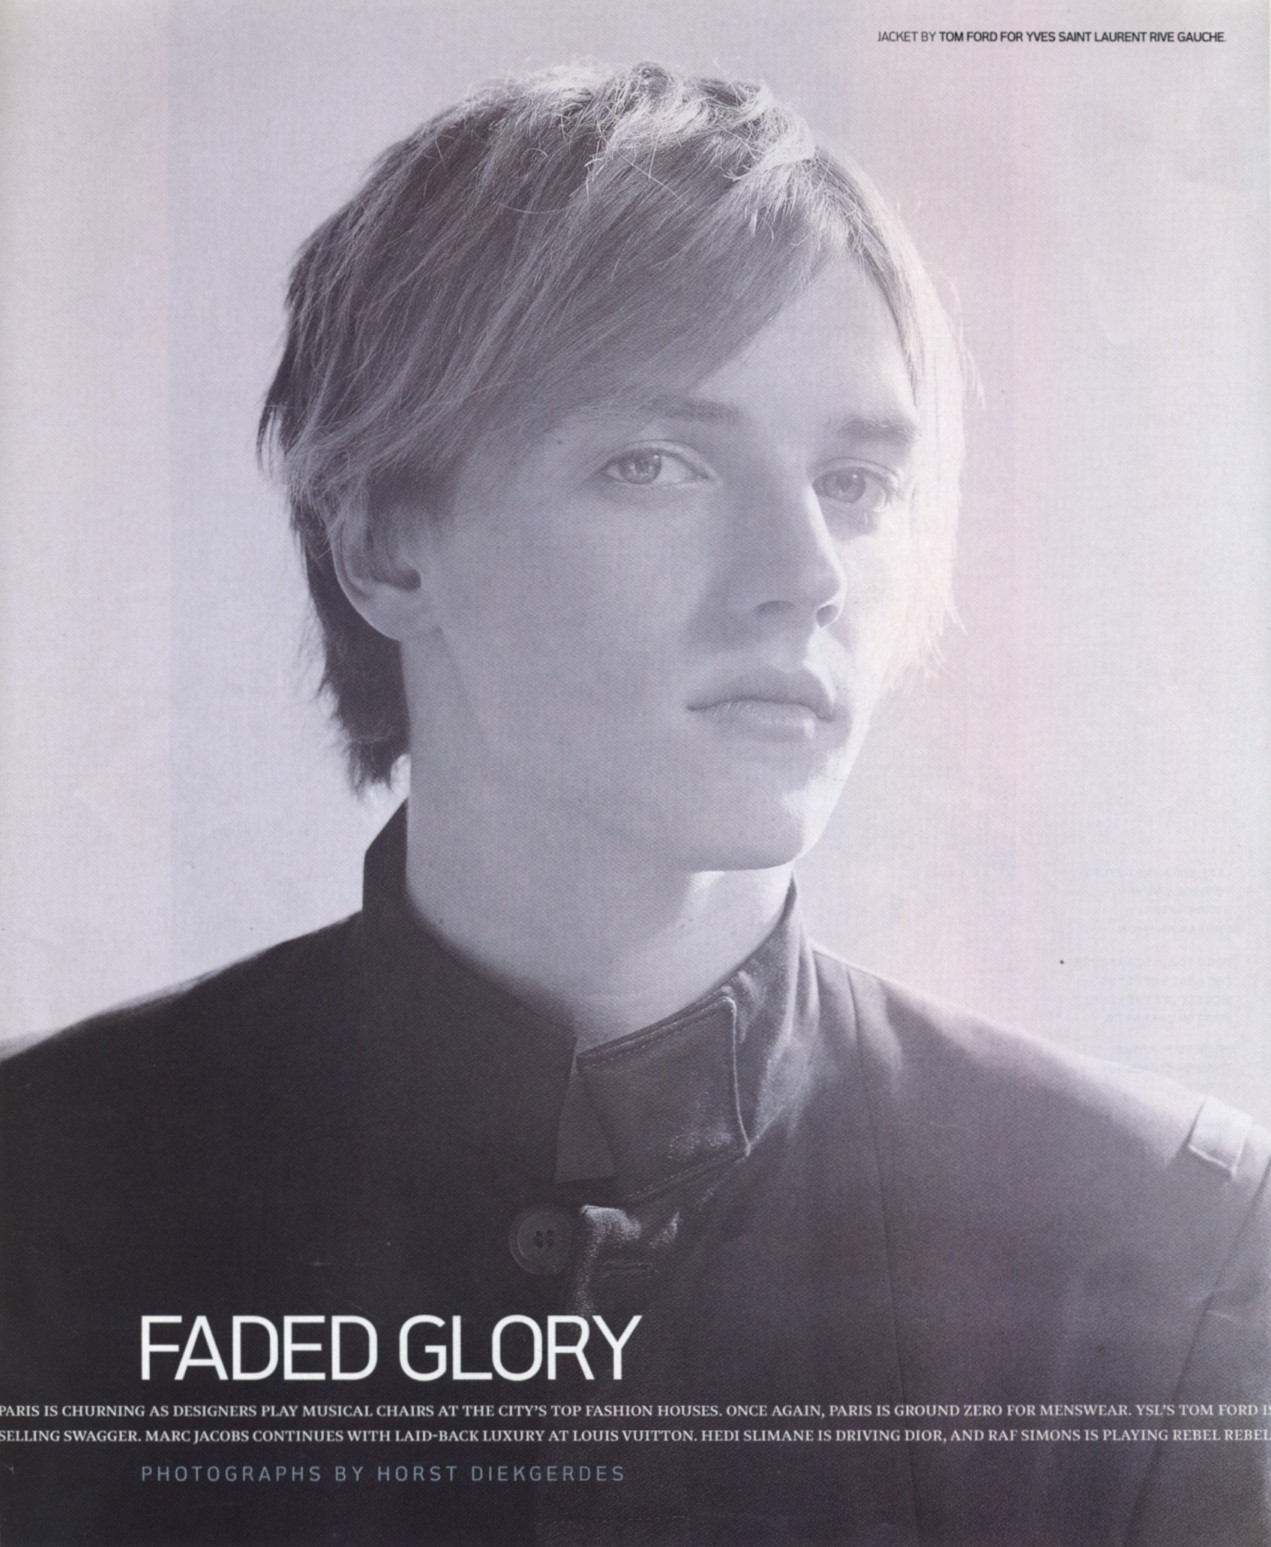 faded glory photography horst diekgerdes details may 2001 1